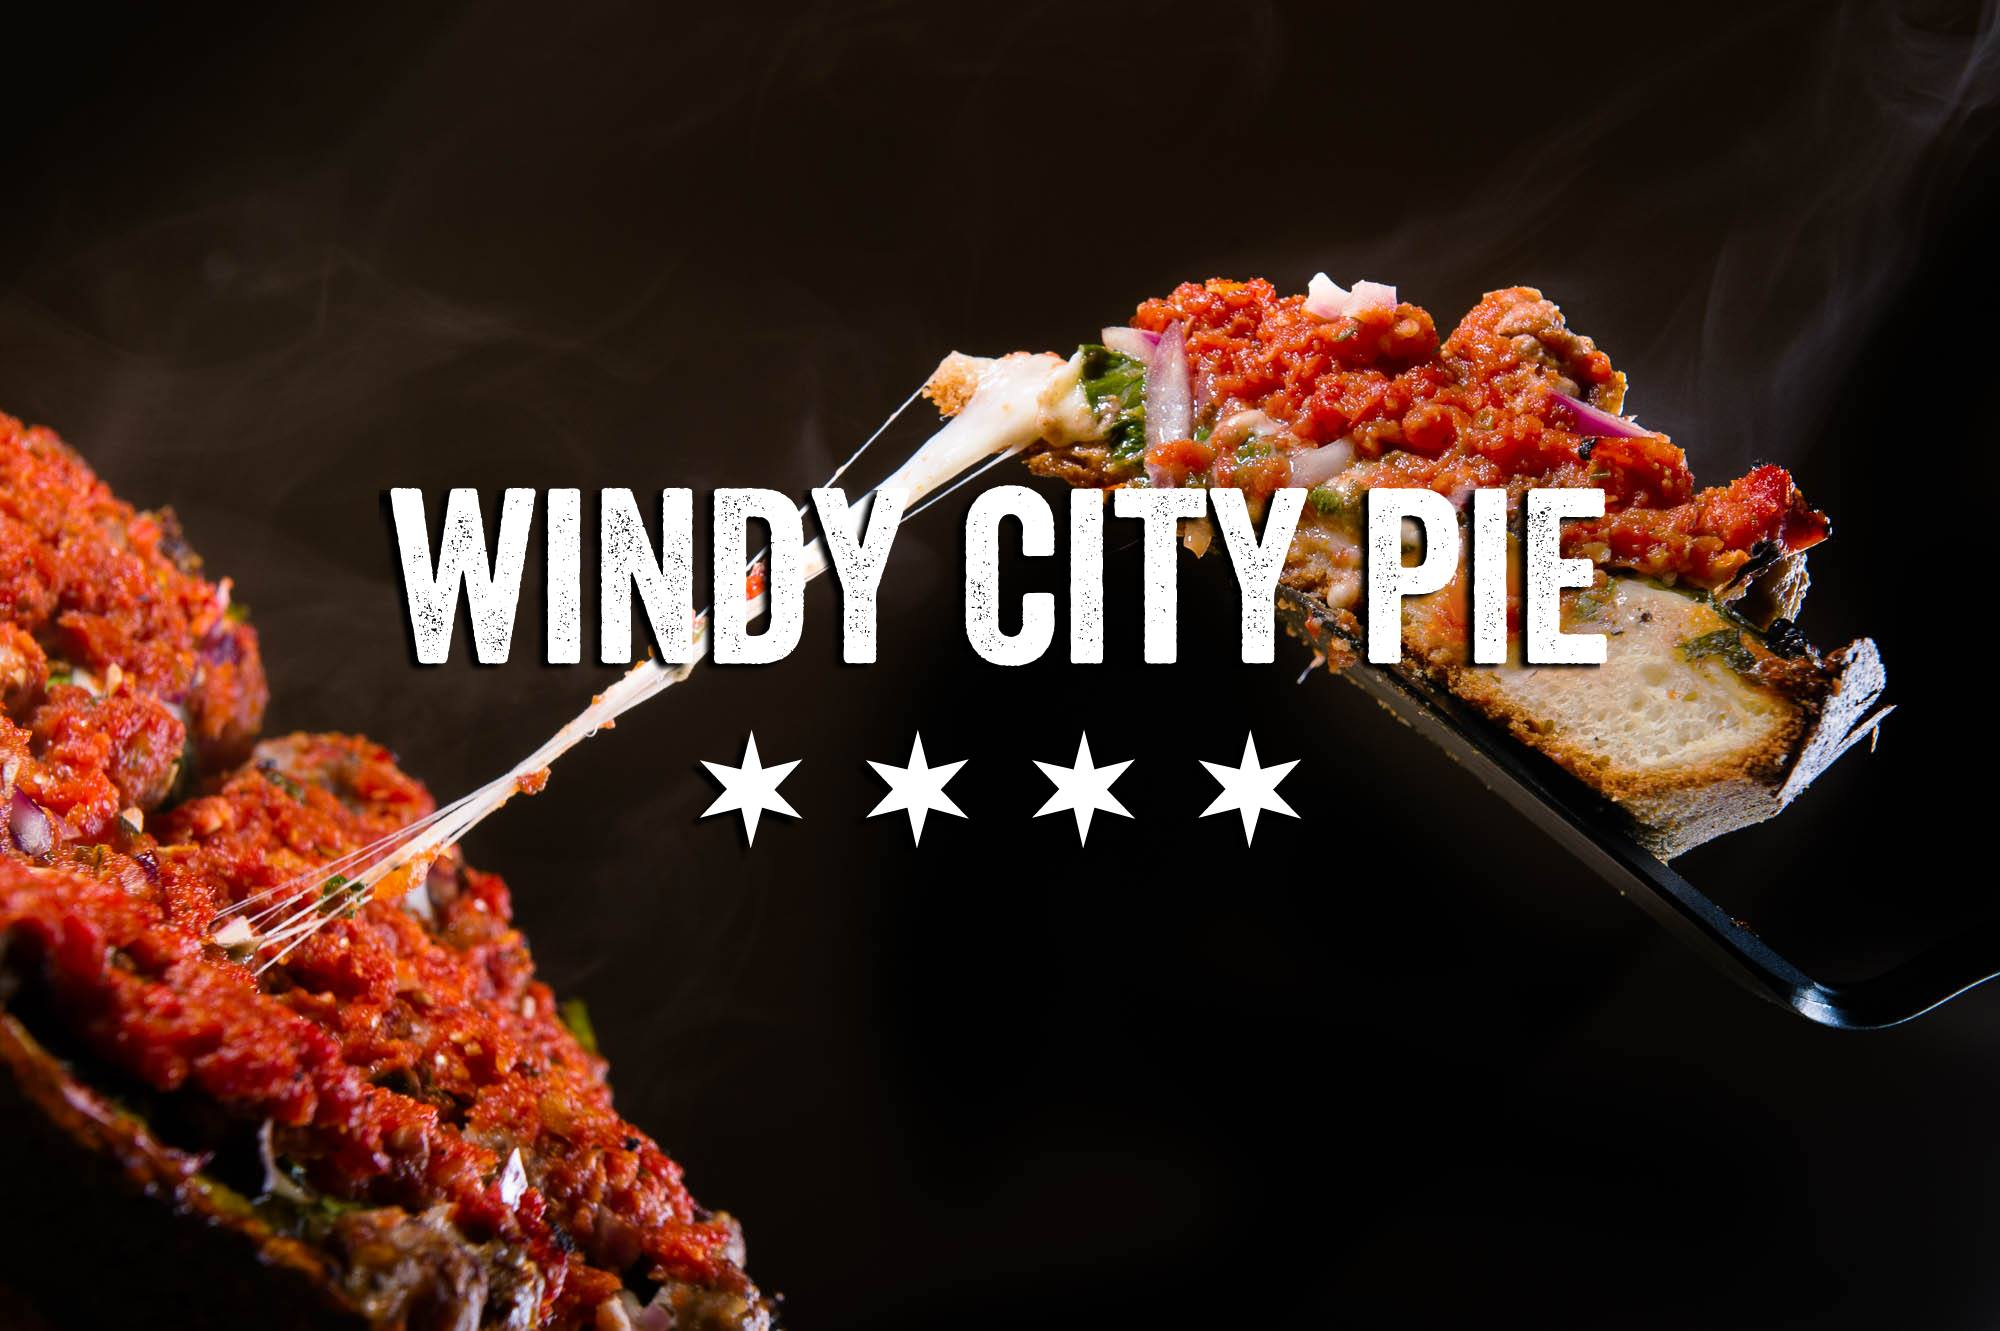 Pizza pizza pie! (Image courtesy of Windy City Pie).